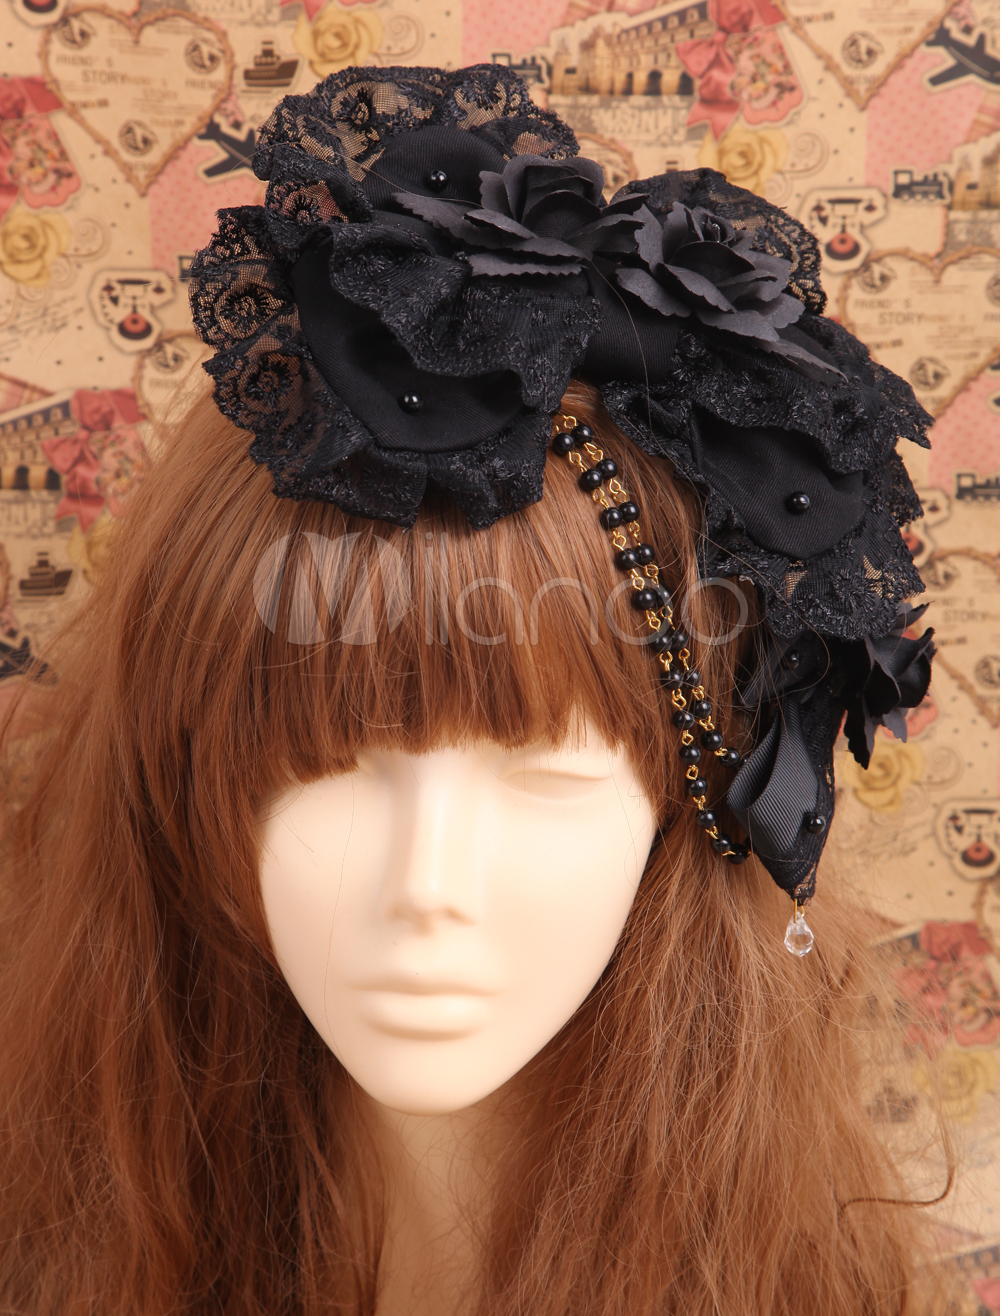 Buy Black Lolita Hairpin Lace Trim Flower Bow Decor Bead Chain for $19.19 in Milanoo store